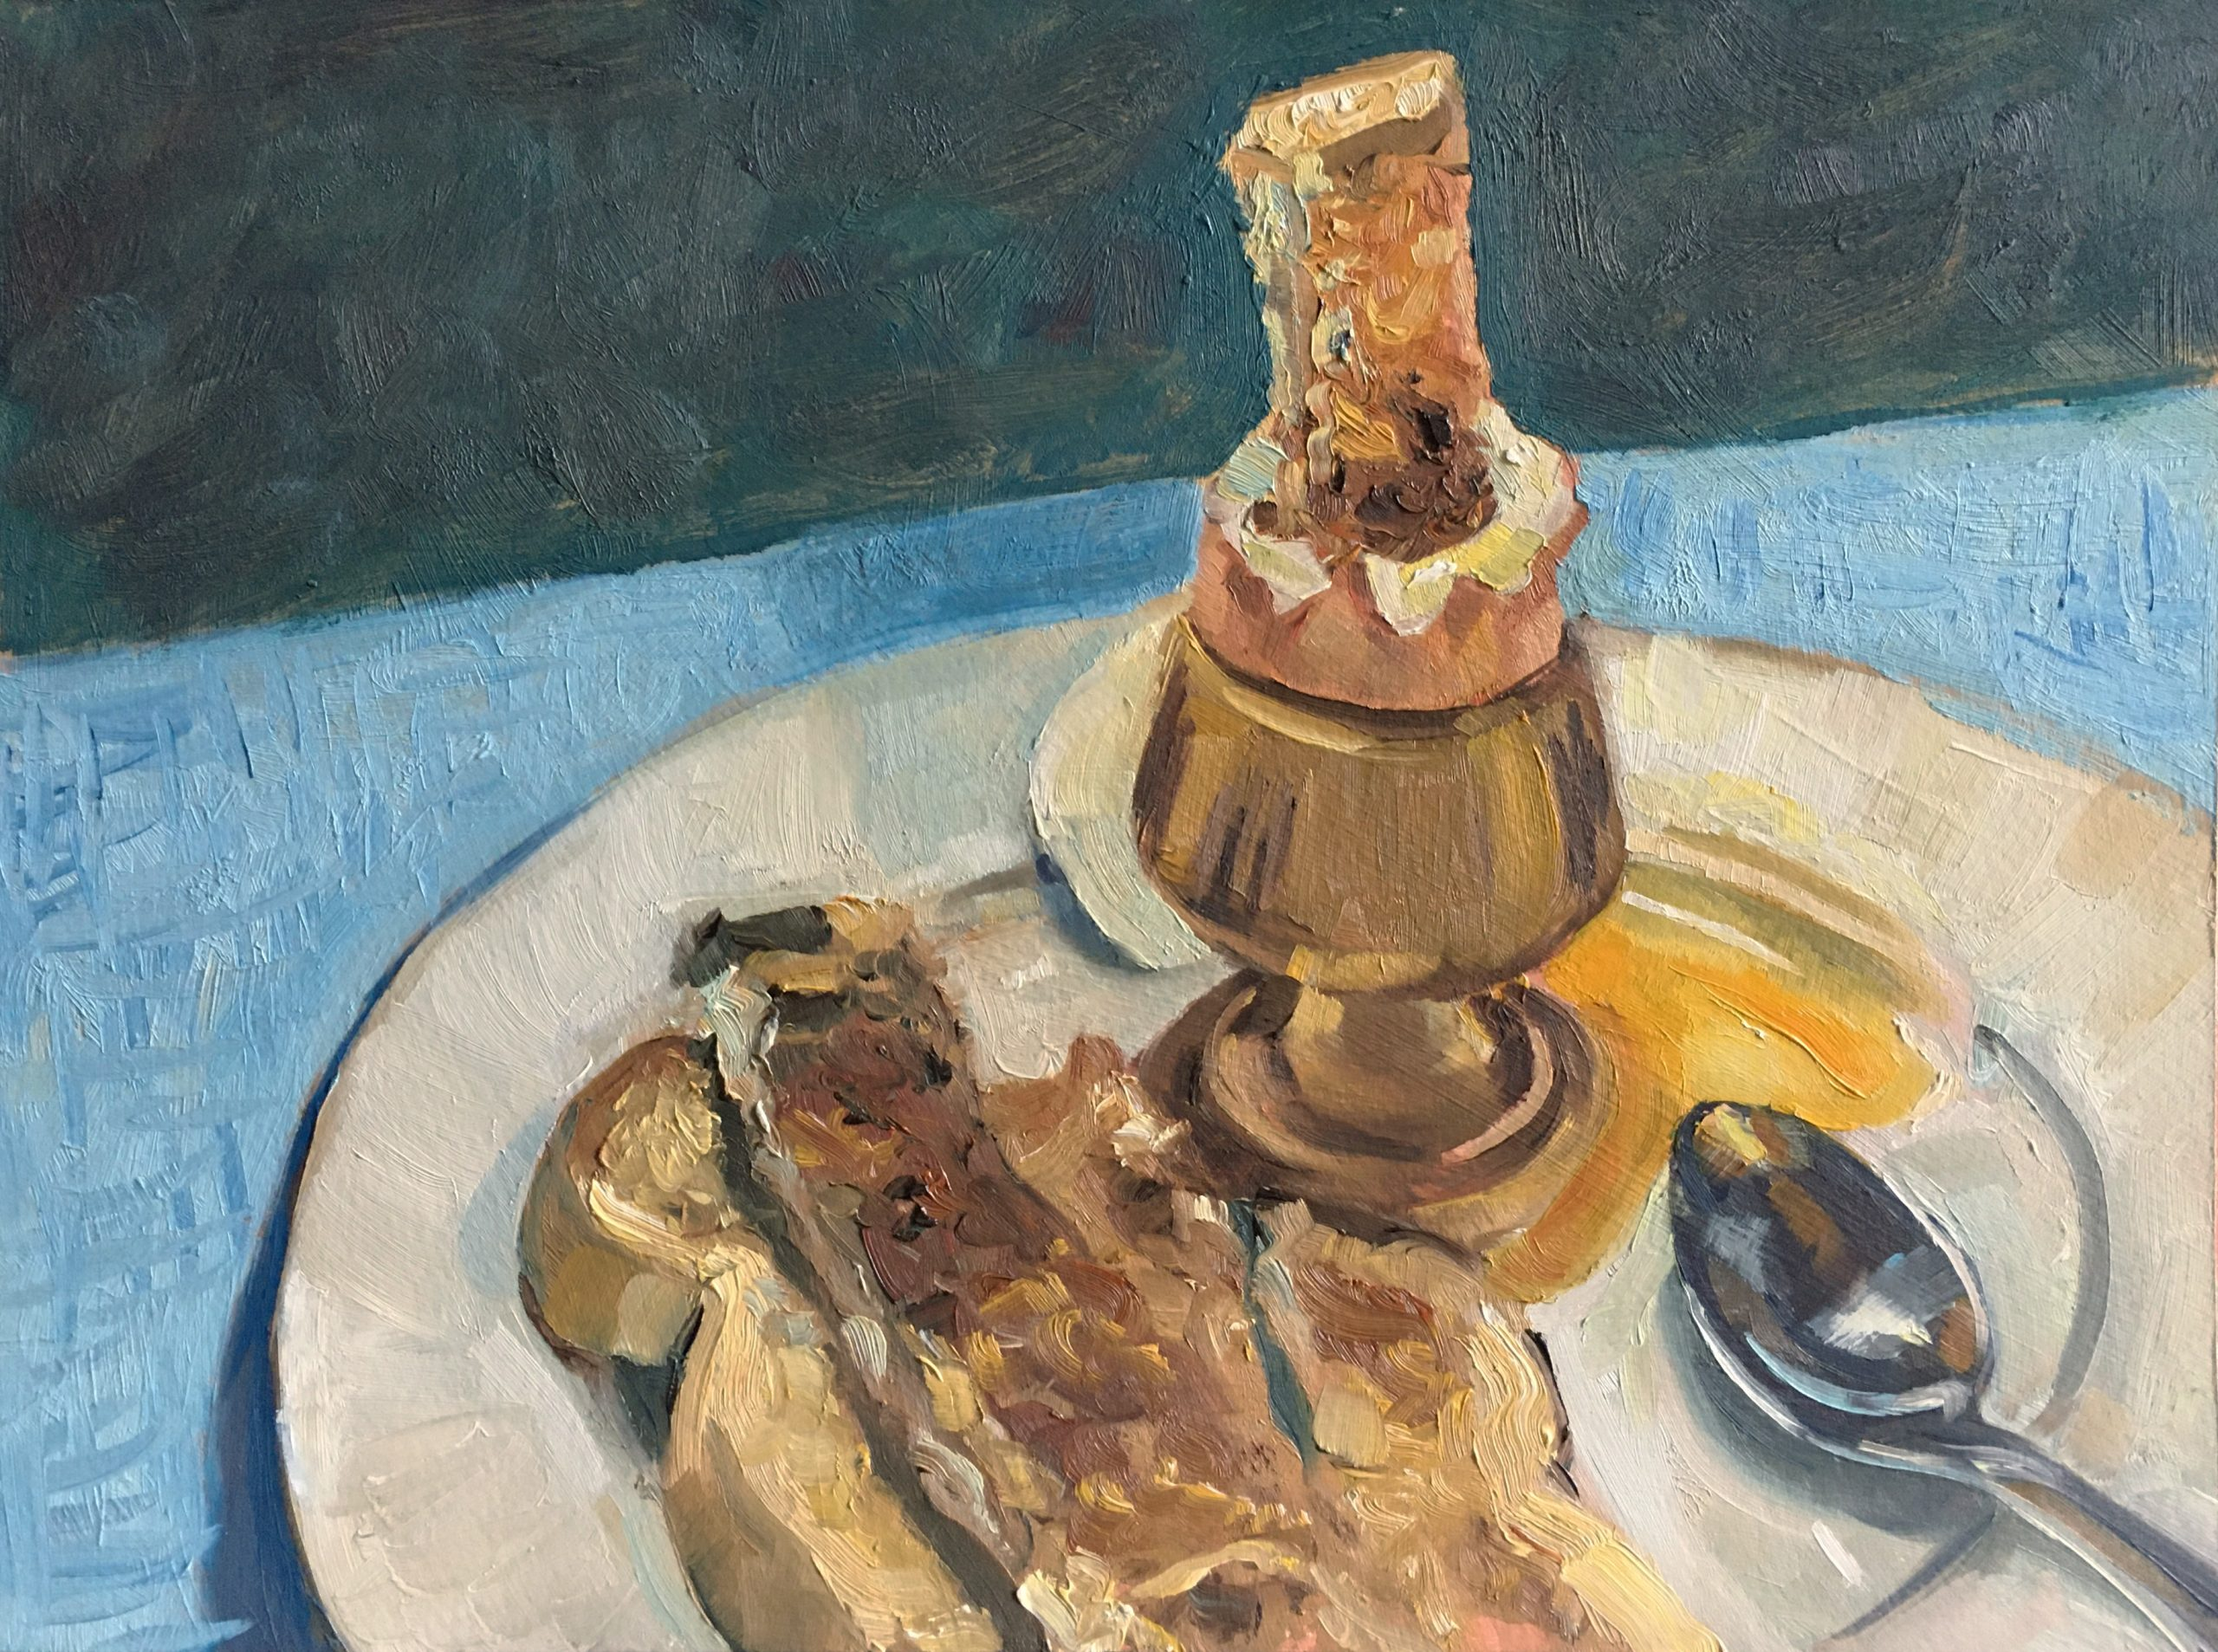 still-life-oil-painting-boiled-egg-cup-toast-fingers-soldiers